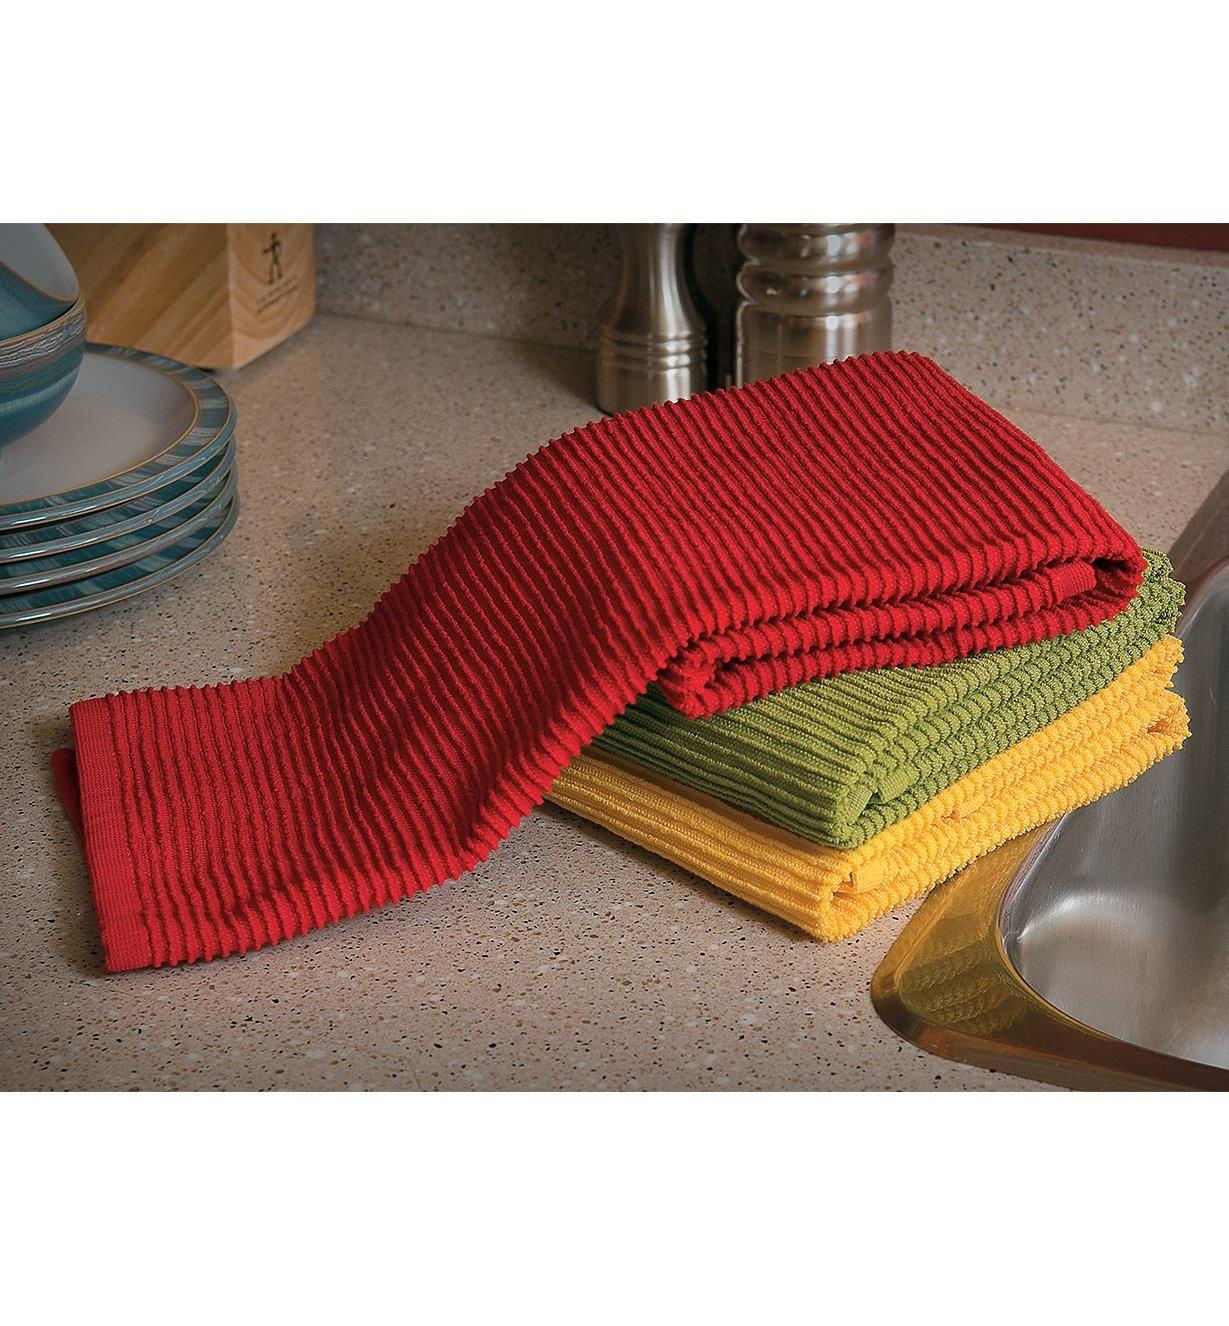 88K5857 - Set of 3 Ripple Towels (yellow, red, green)